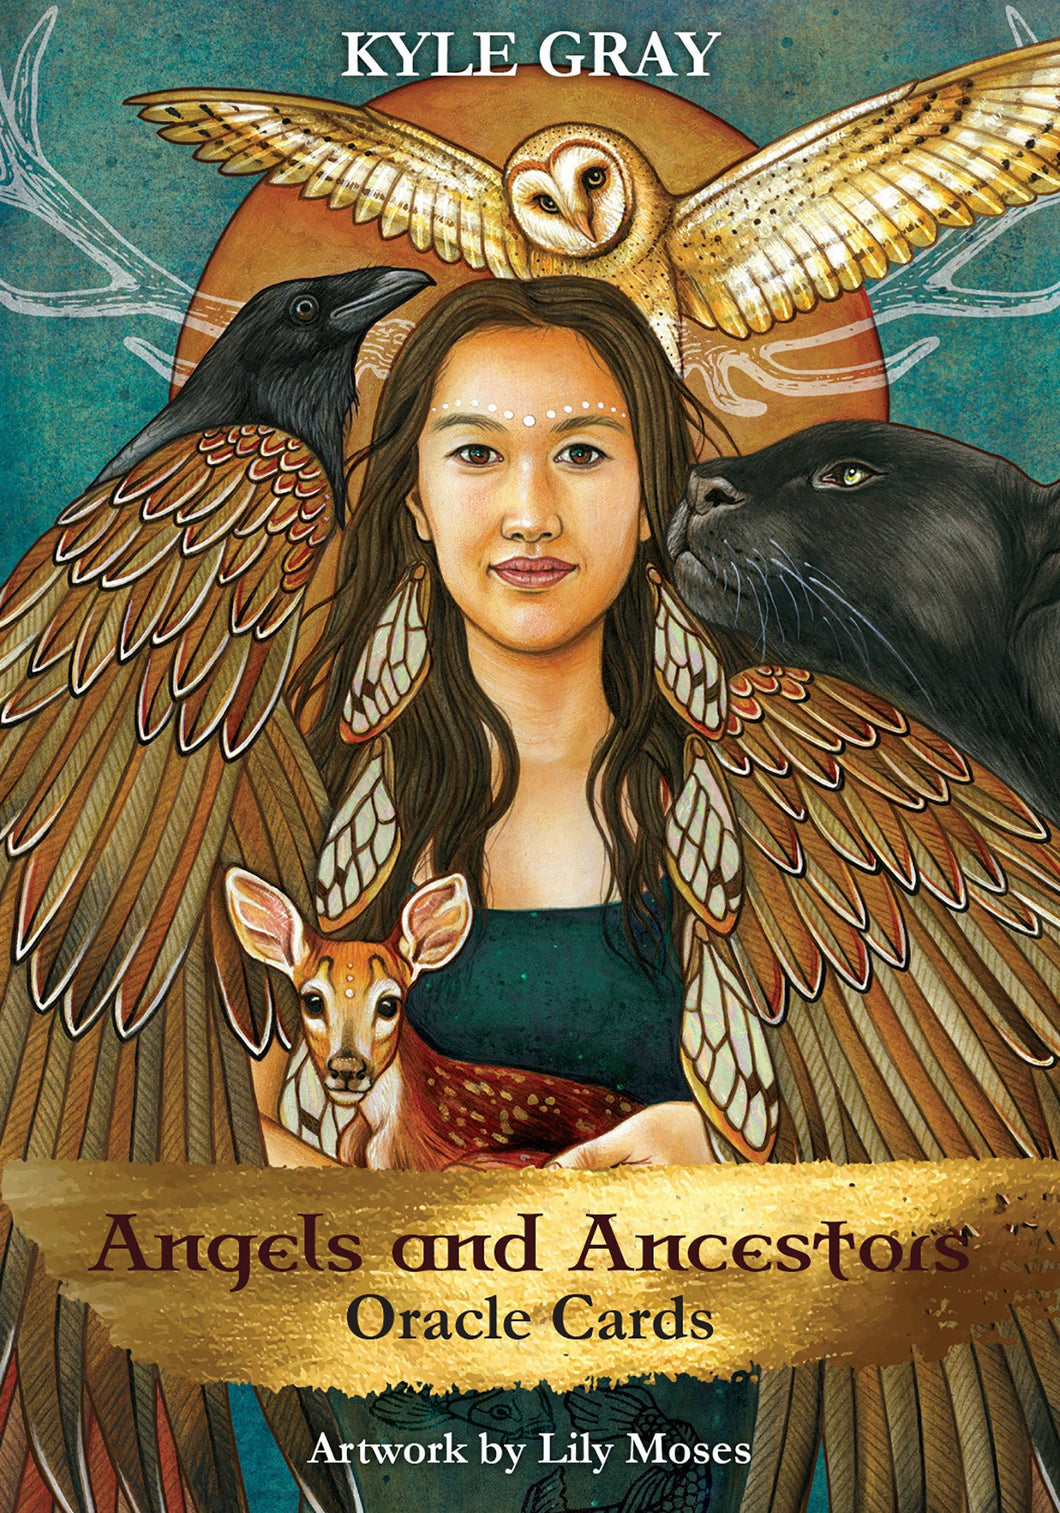 Angels & Ancestors Oracle Cards [Kyle Gray]